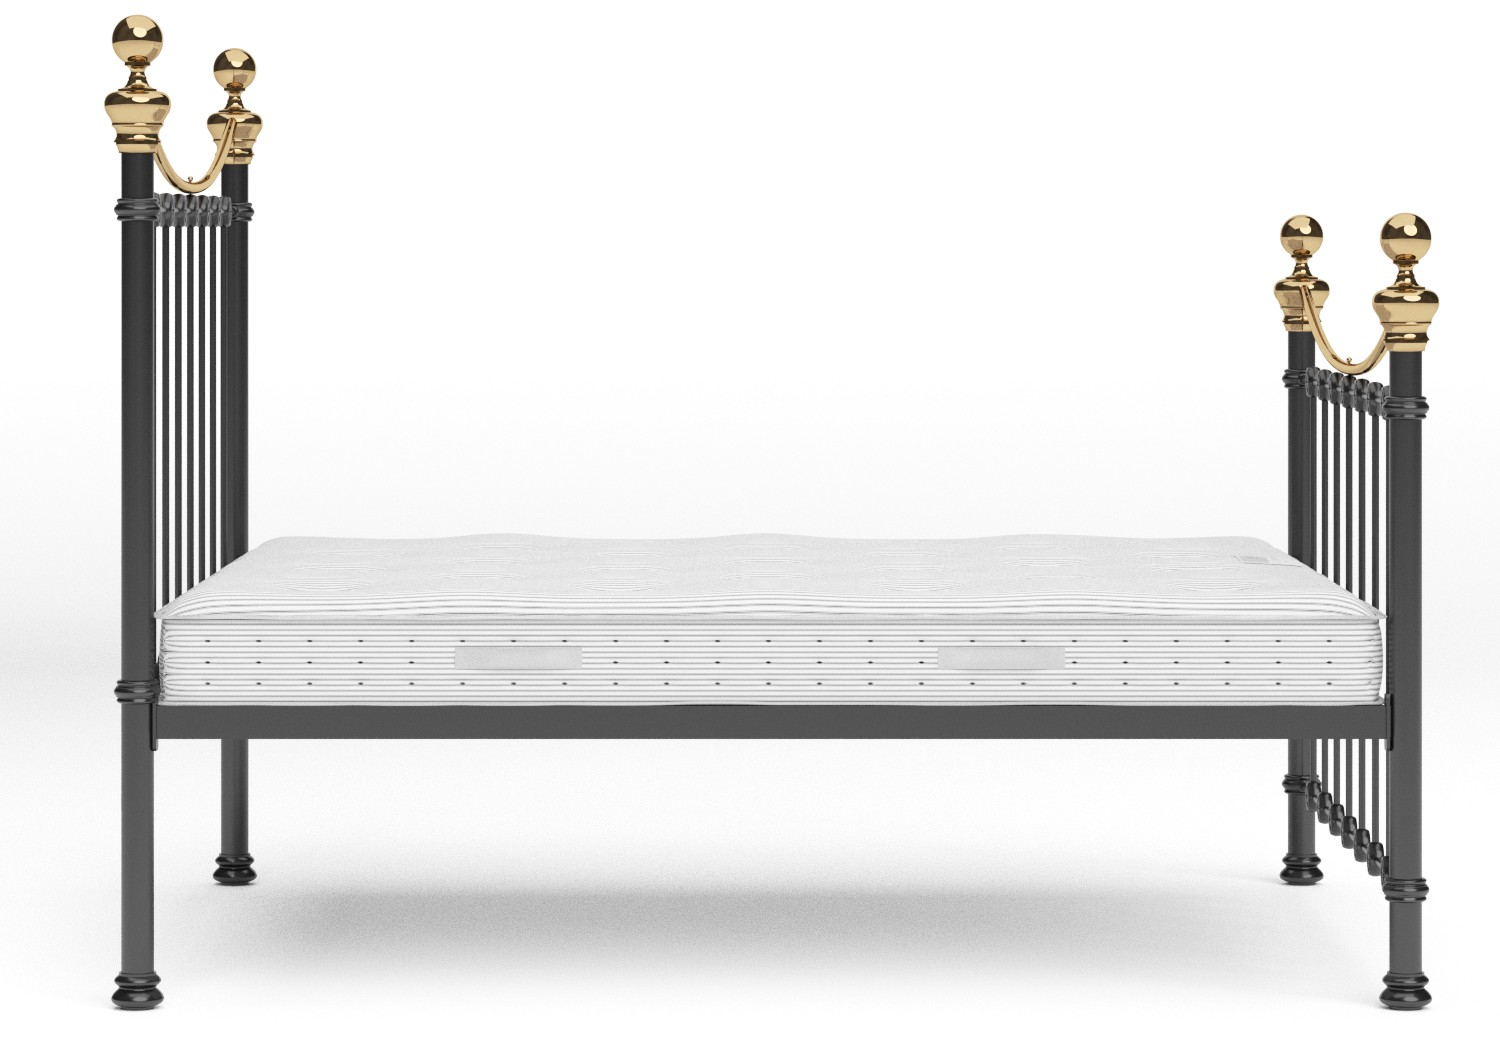 Selkirk Iron/Metal Bed in Satin Black with Brass details shown with Juno 1 mattress